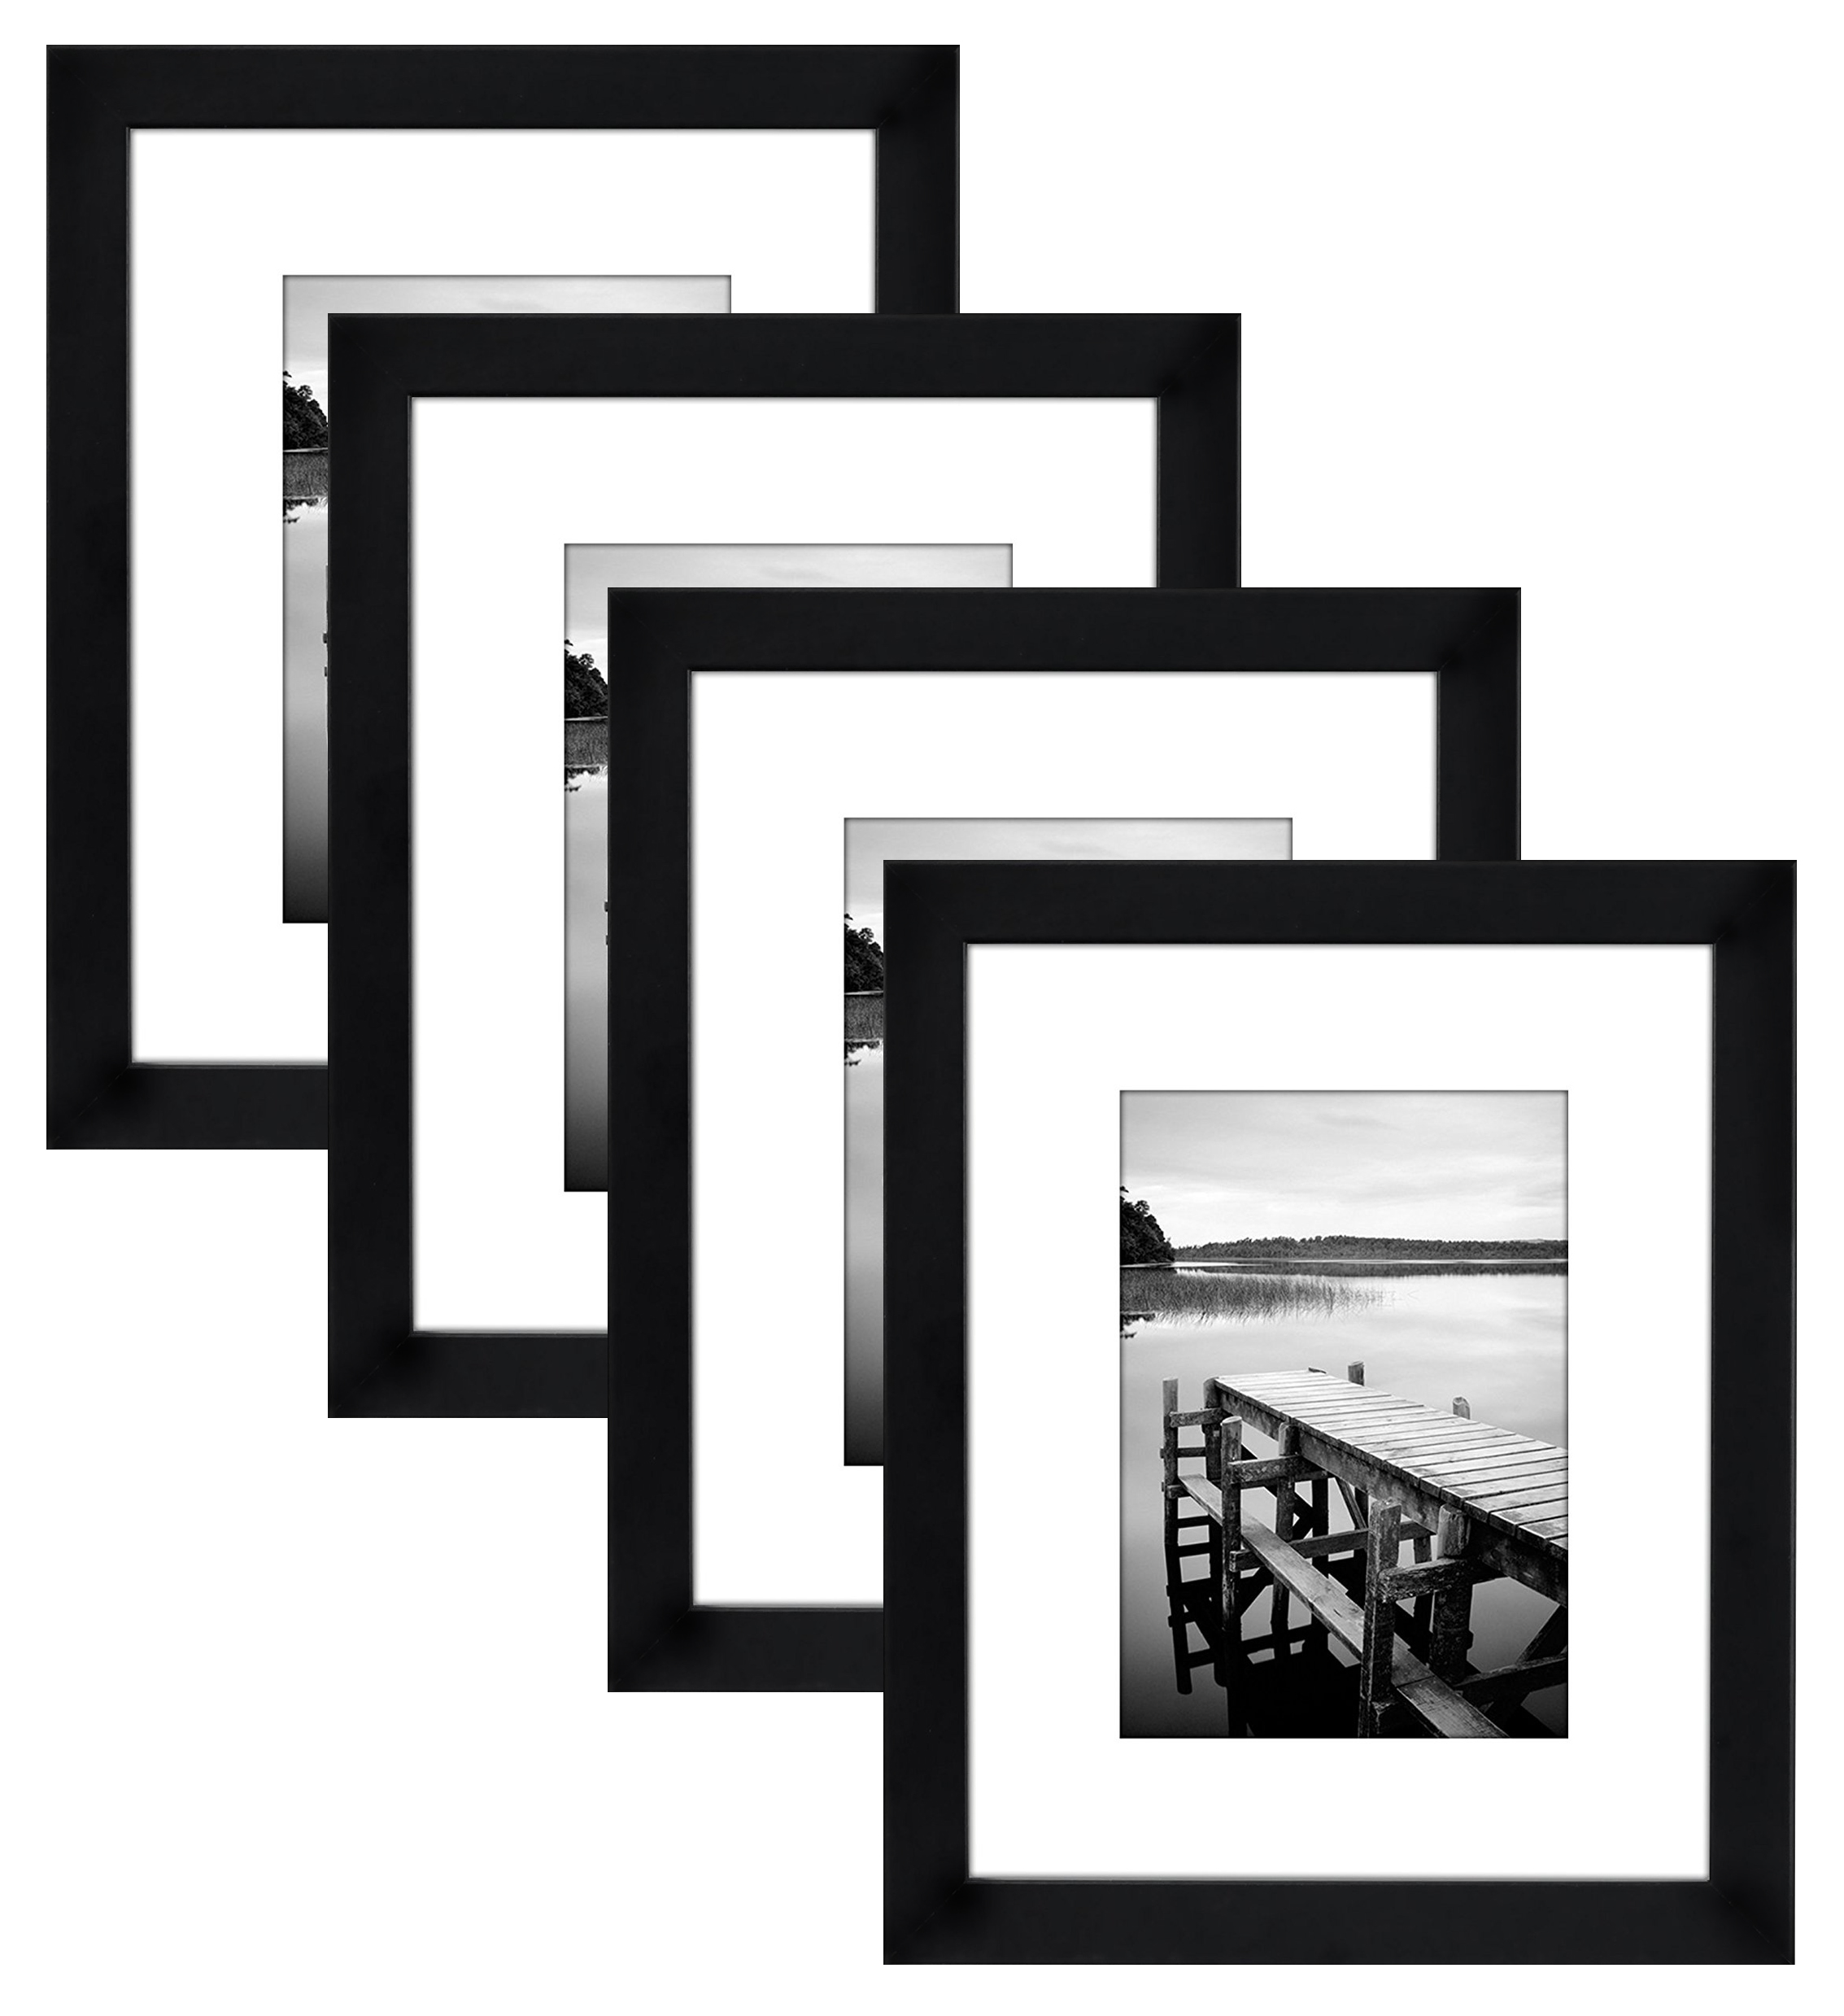 4-Pack, 8x10 Black Picture Frames - Display 5x7 Photos with Mats